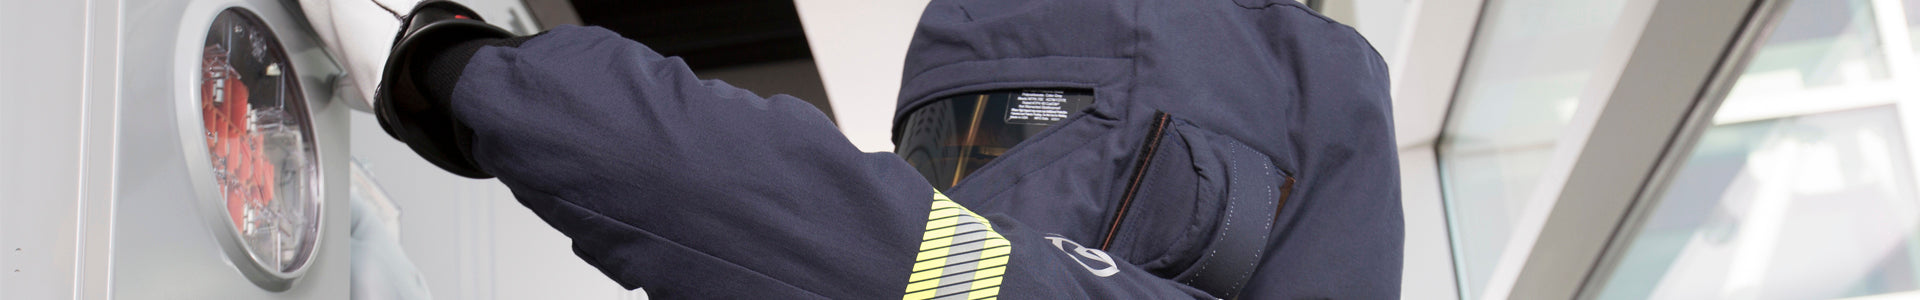 Arc Flash PPE Kits